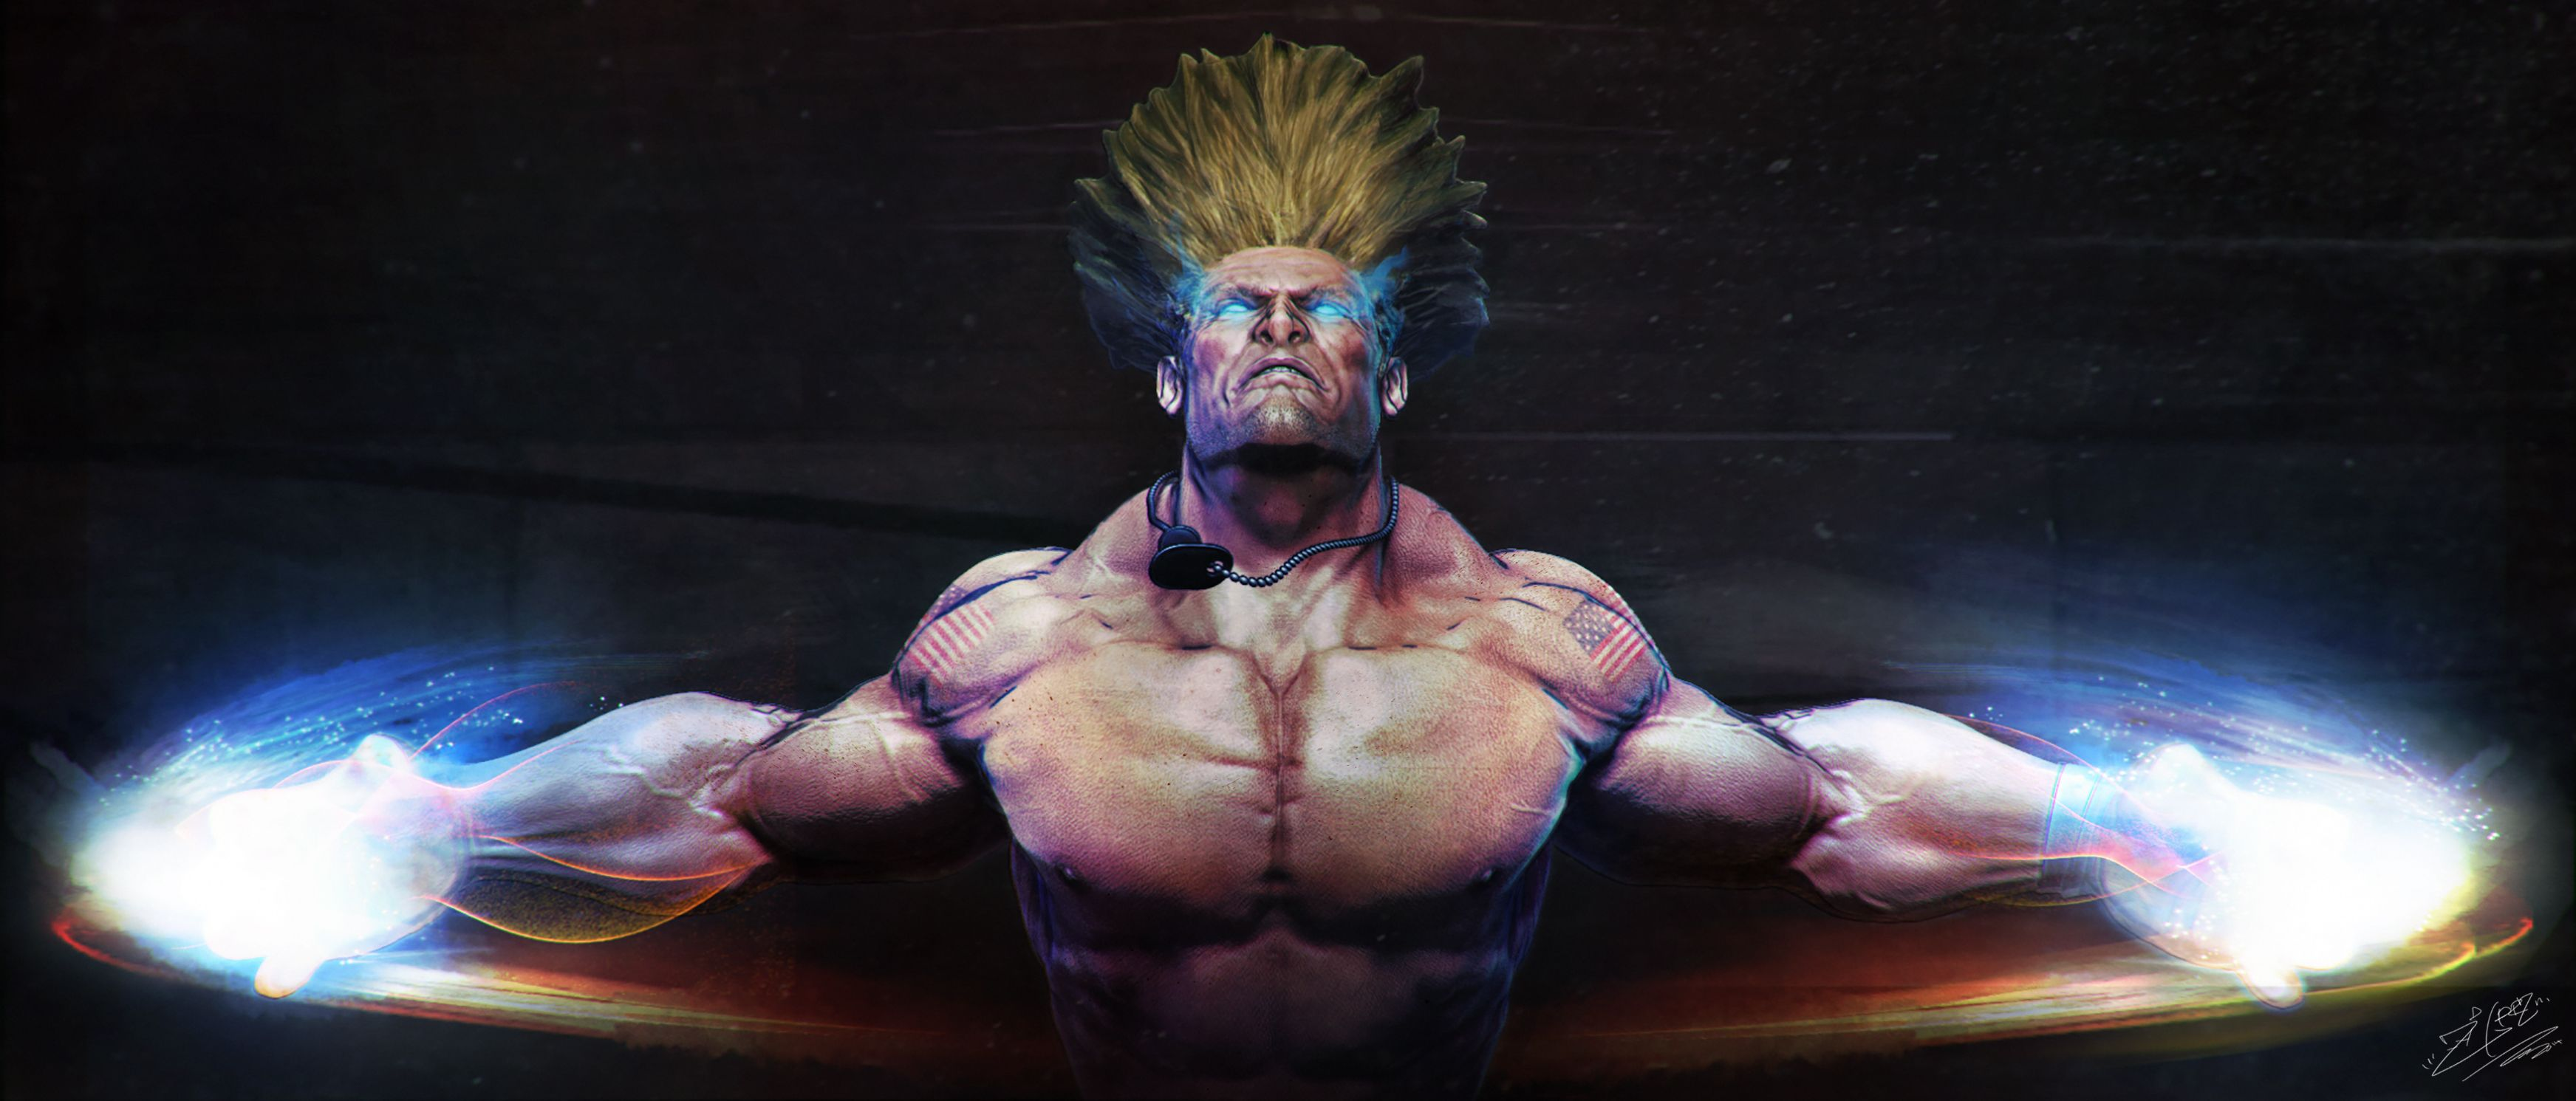 Guile Sonic Boom by Callen Desmond Characters